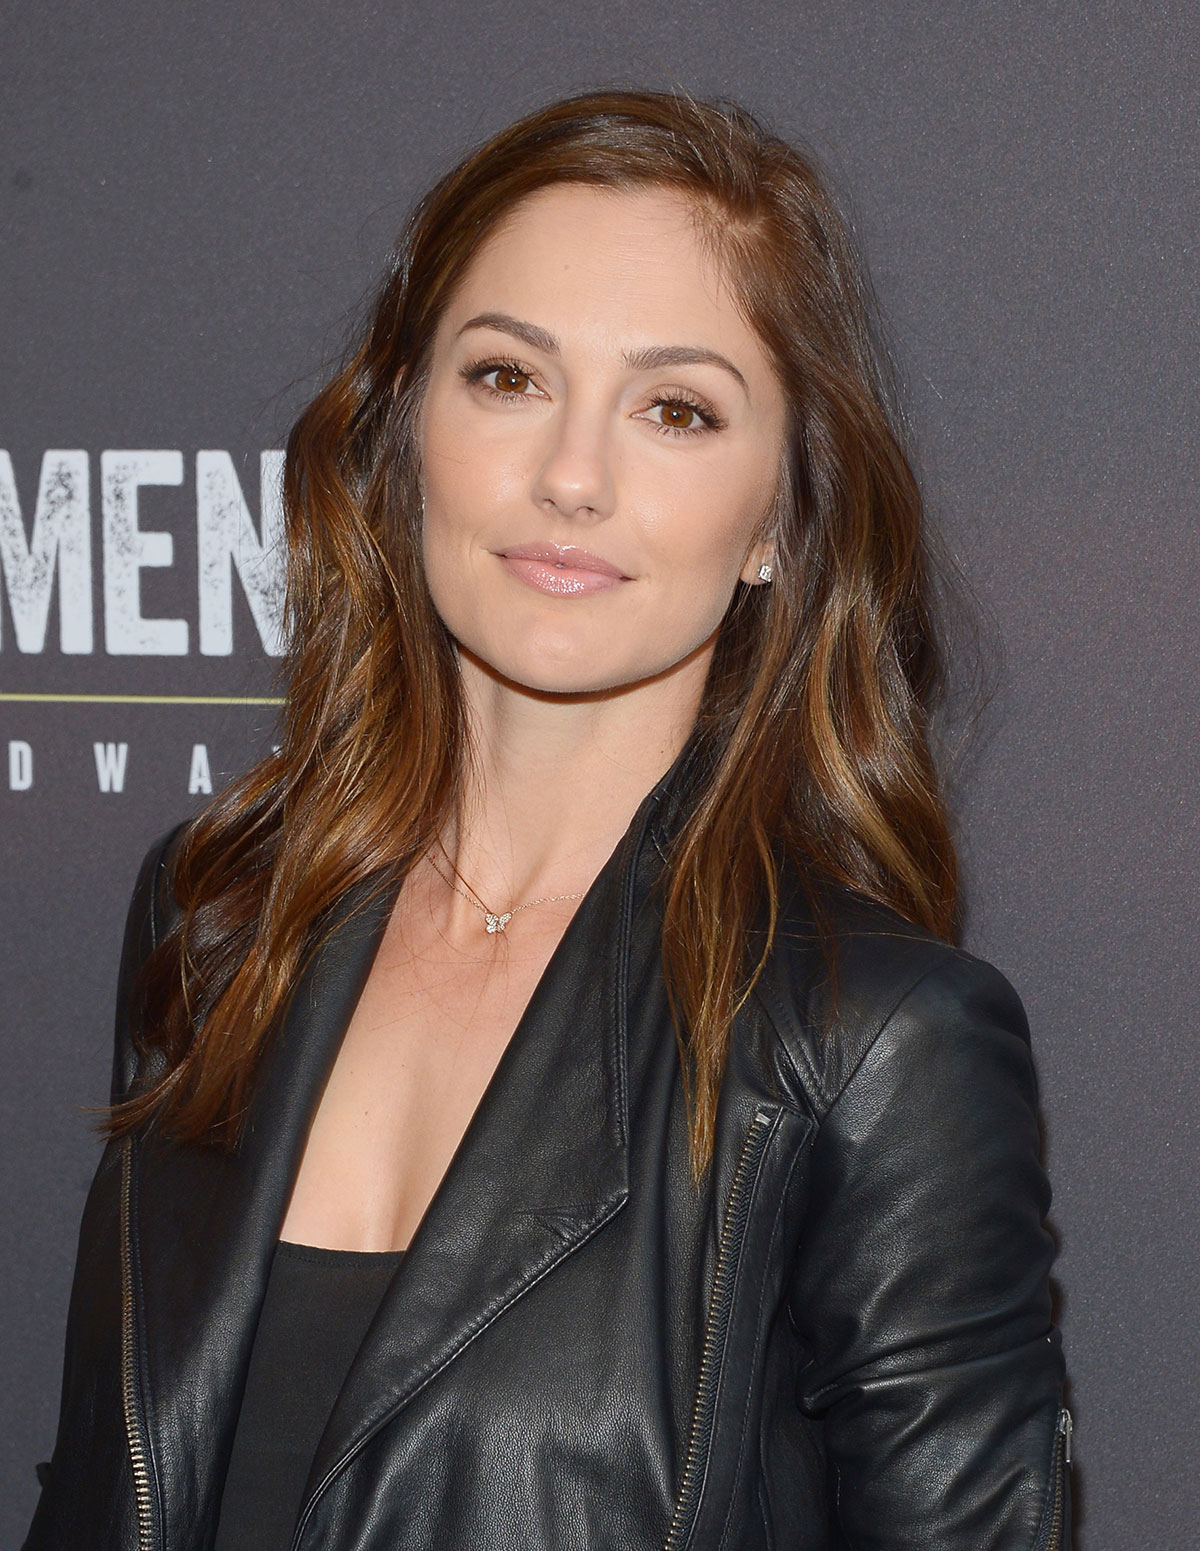 Minka Kelly attends the Broadway opening night for Of Mice and Men